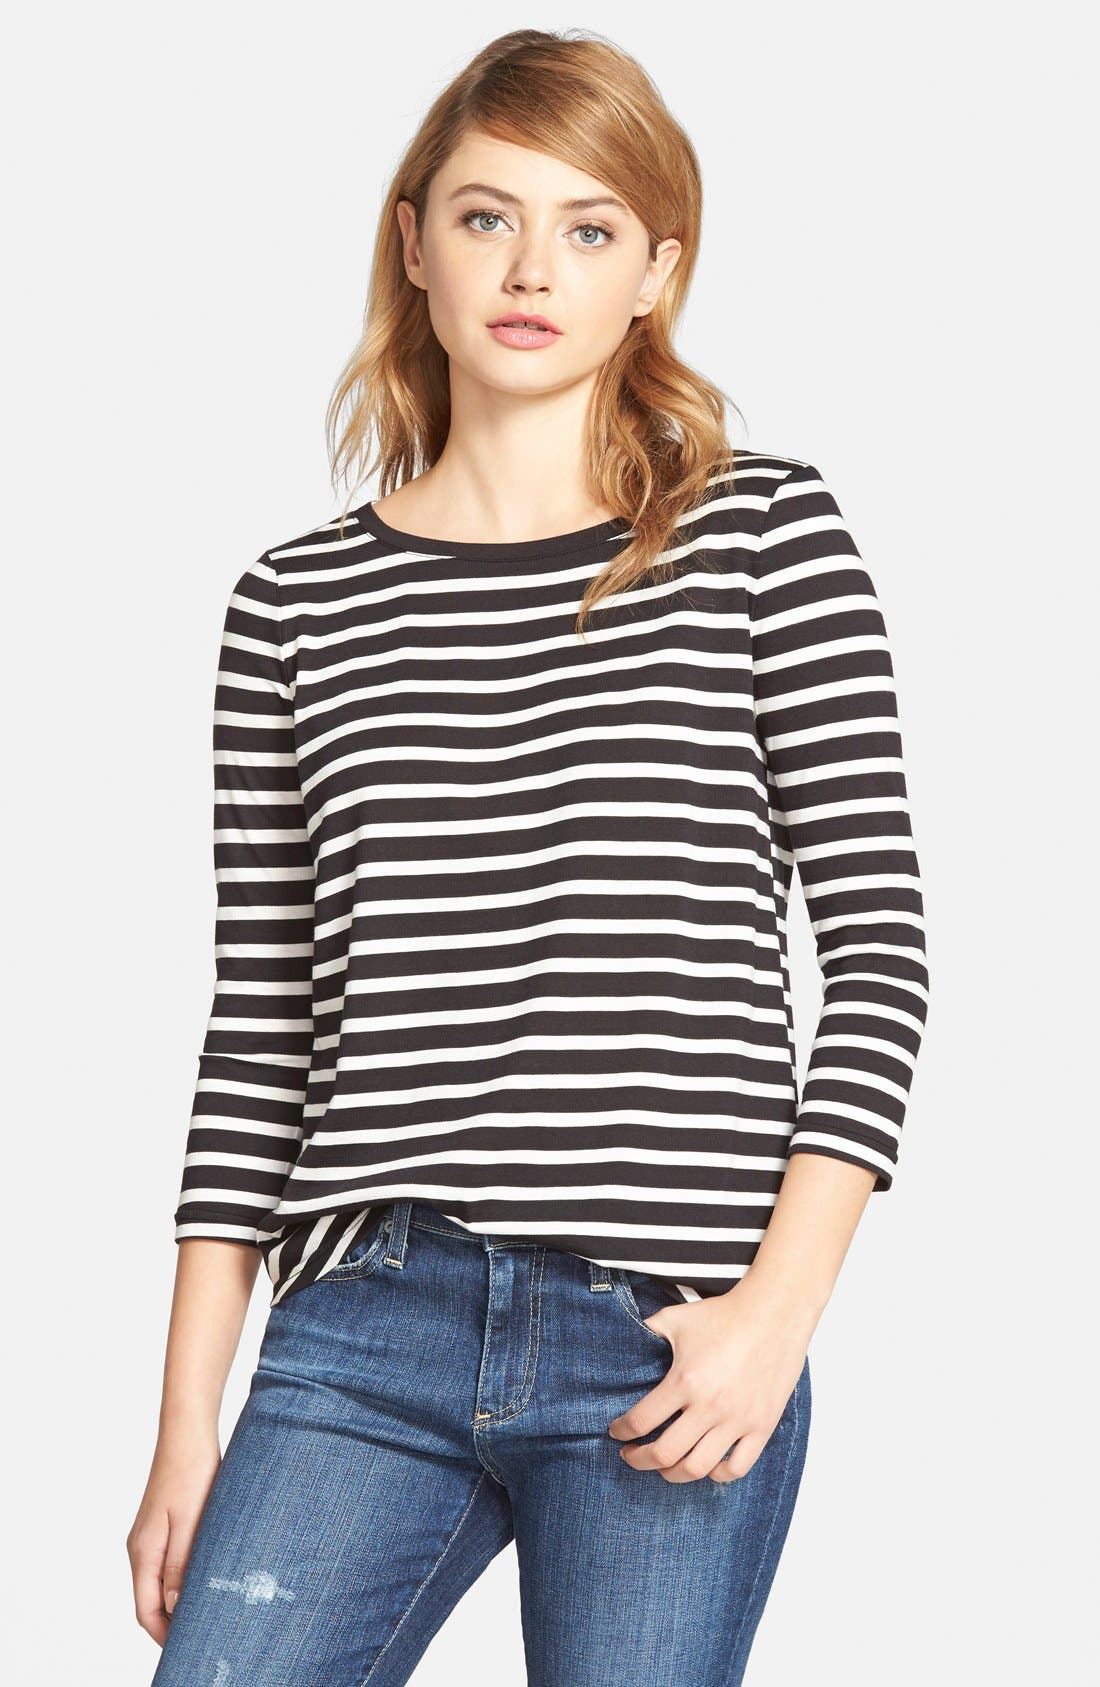 CUPCAKES AND CASHMERE 'Mendocino' Stripe Top, Main, color, 001